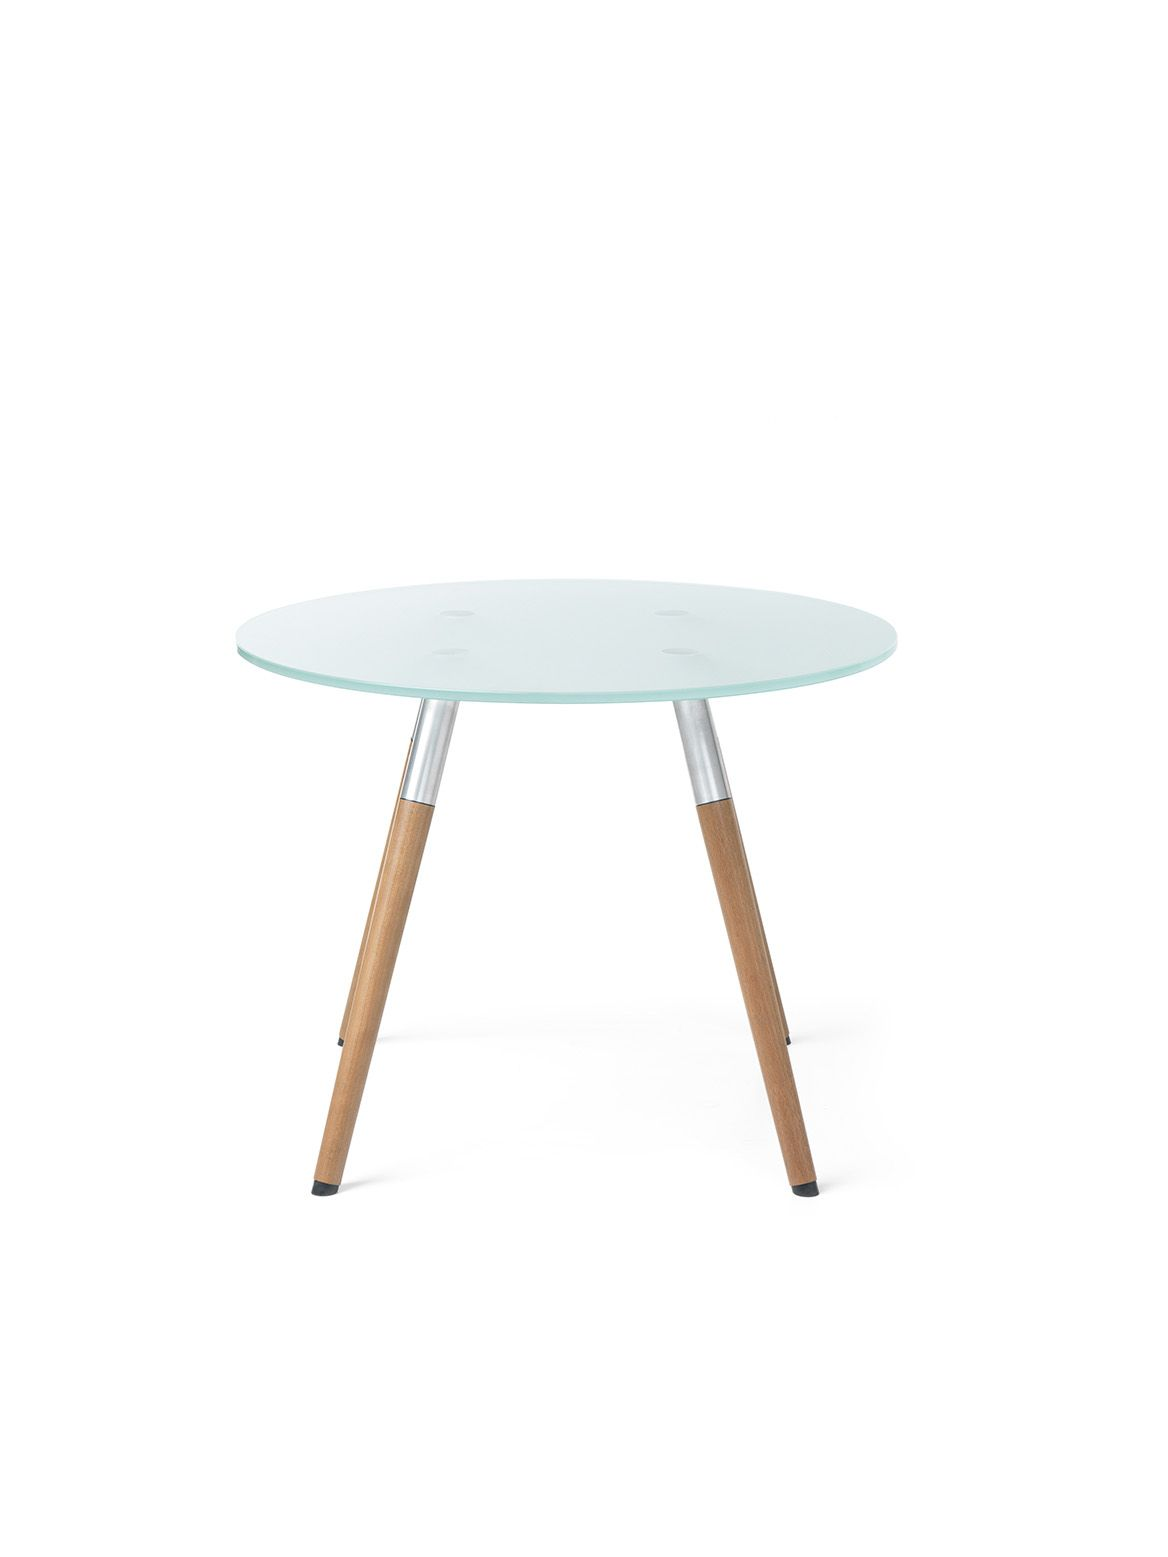 Product Code from photo: Table SW40. #profim